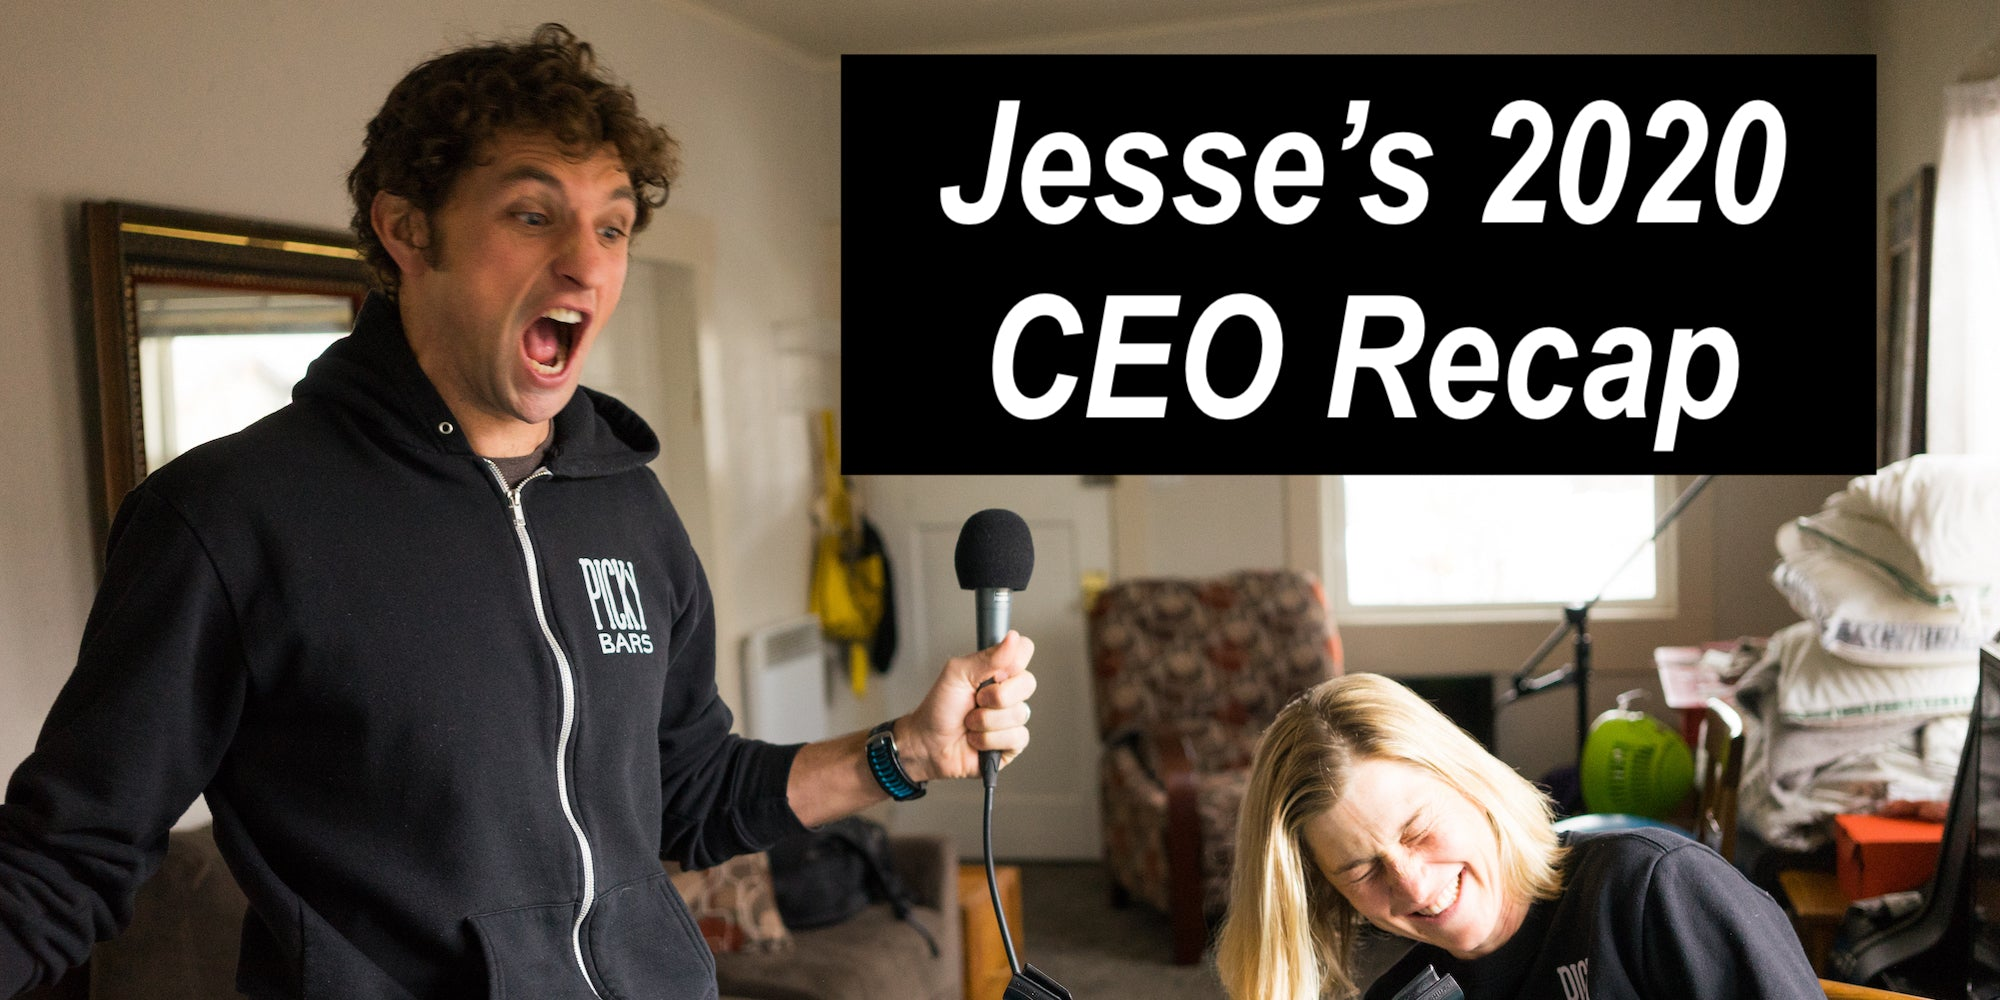 A Look Back on 2020 (Jesse's CEO Recap)